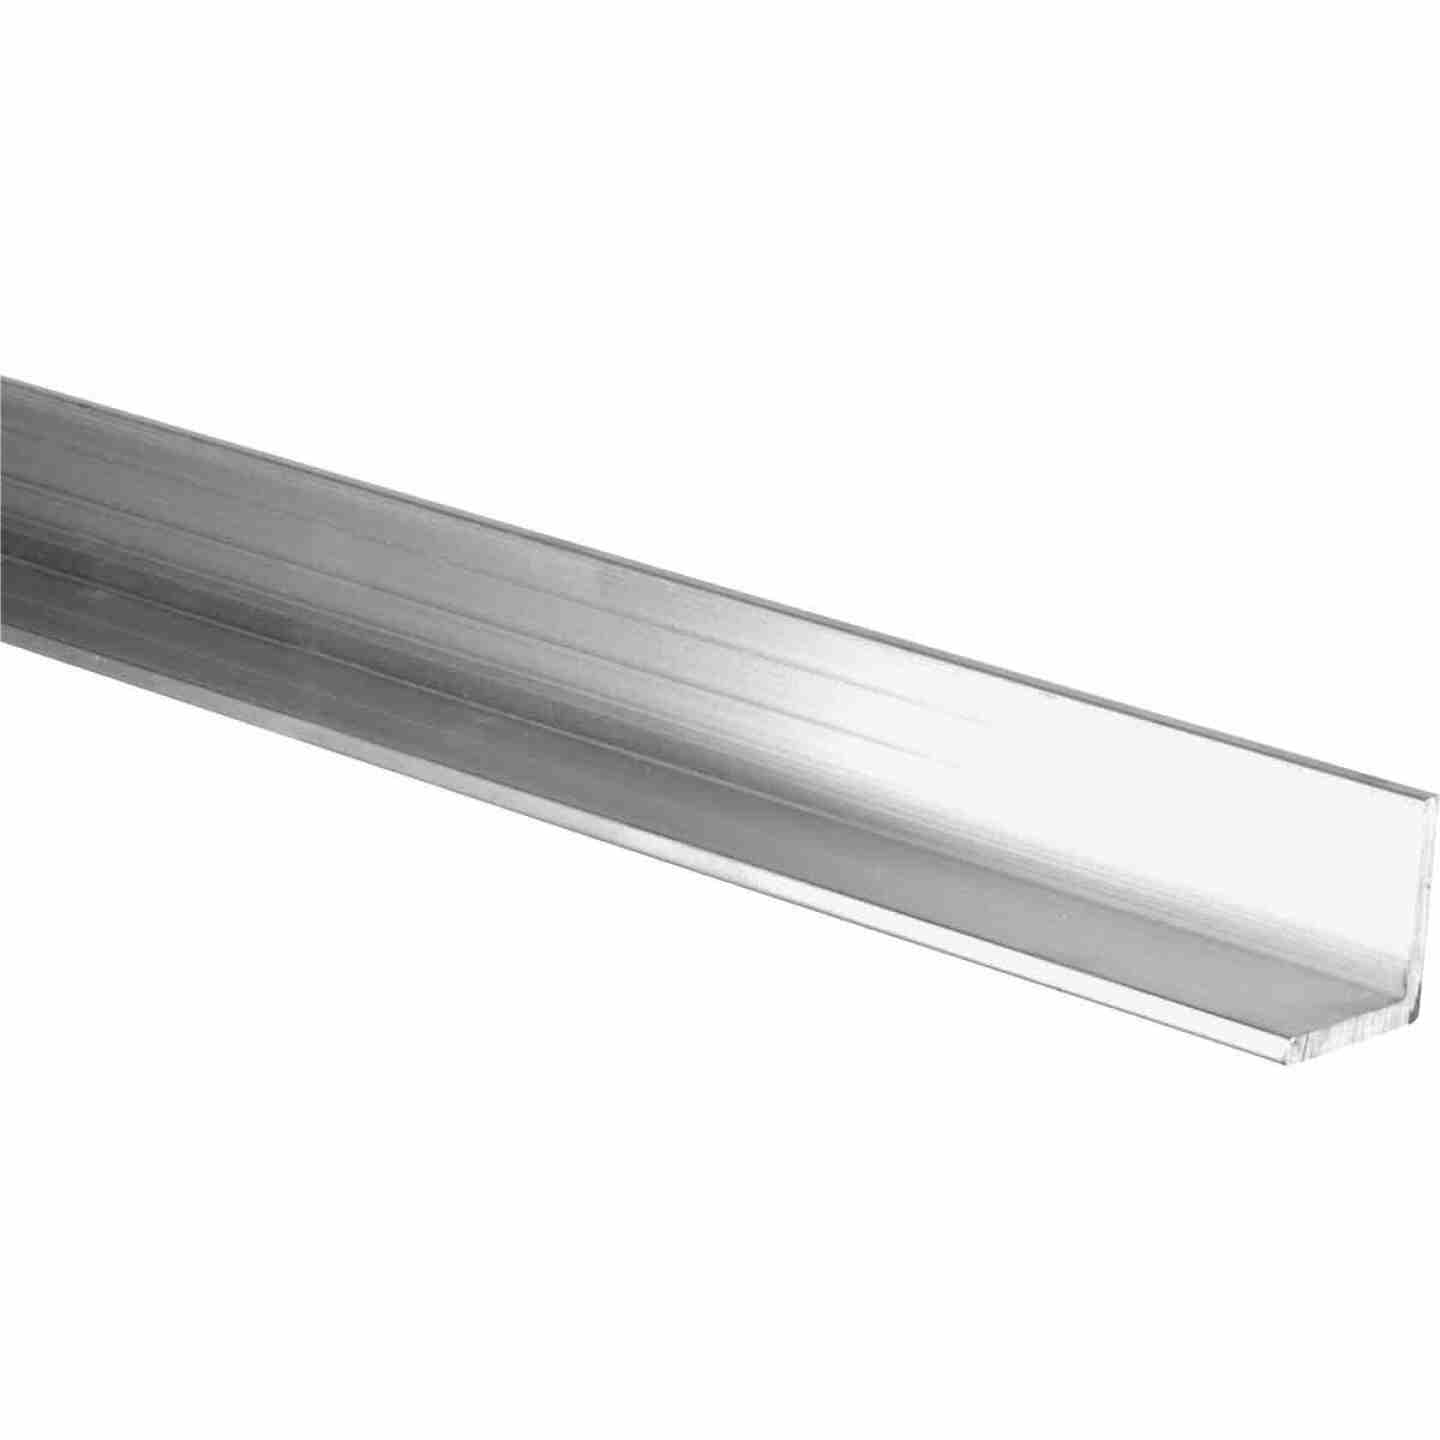 HILLMAN Steelworks Mill 1 In. x 6 Ft., 1/8 In. Aluminum Solid Angle Image 1